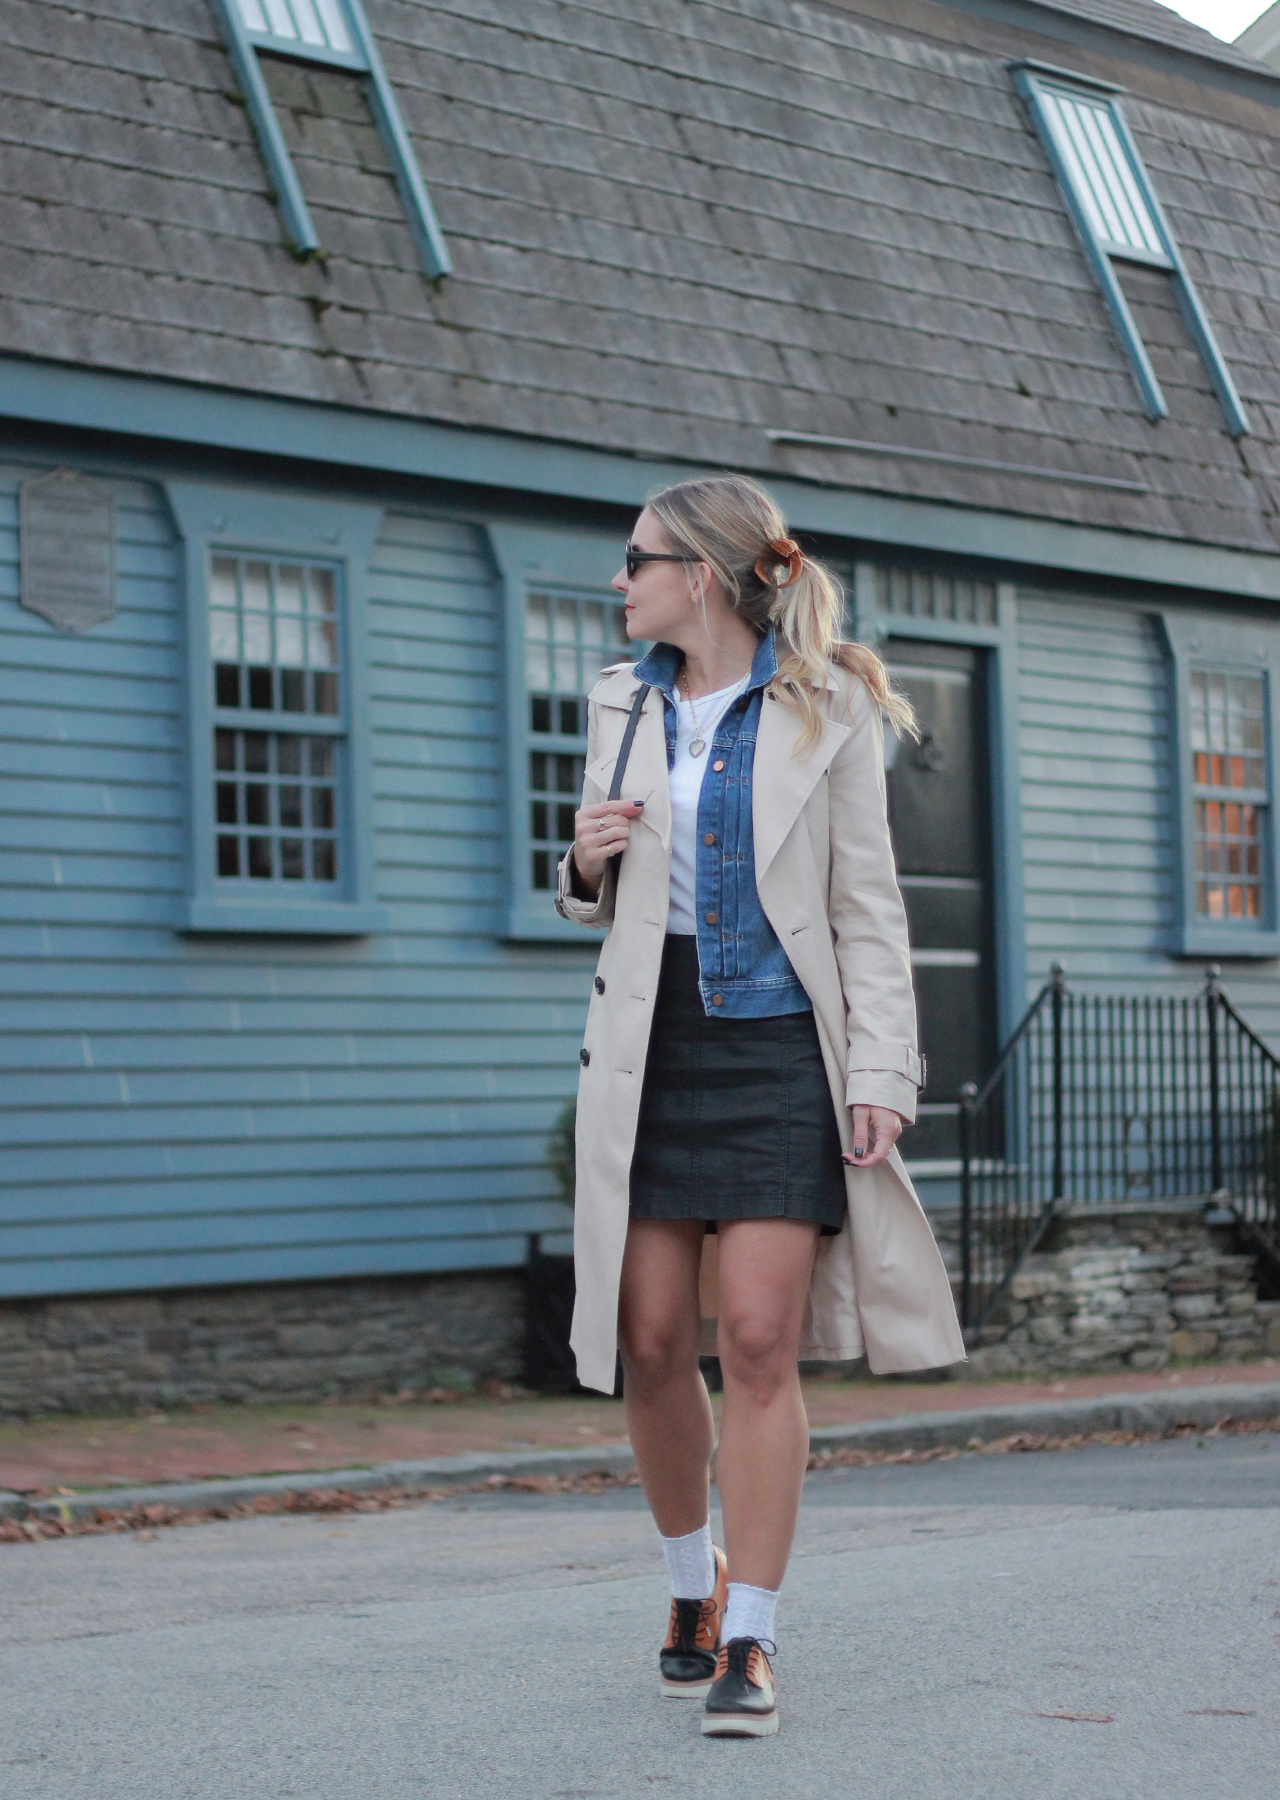 The Steele Maiden - 3 Must Have Coats for Fall Travel